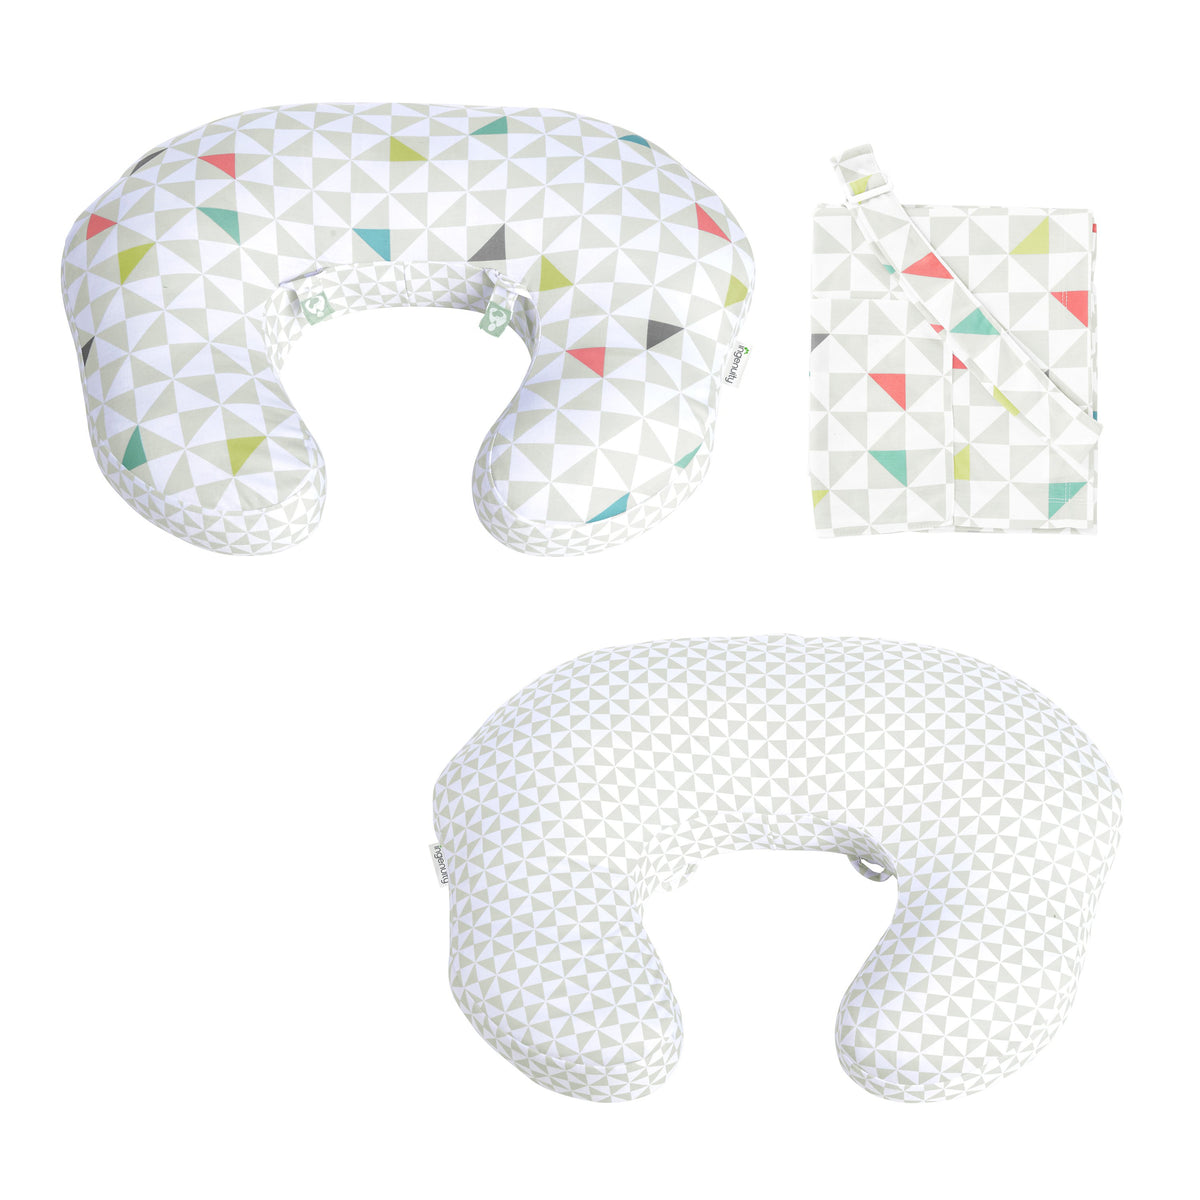 Ingenuity BS11819 Plenti Nursing Pillow Set - Colorful Gem - includes Pillow & Cover